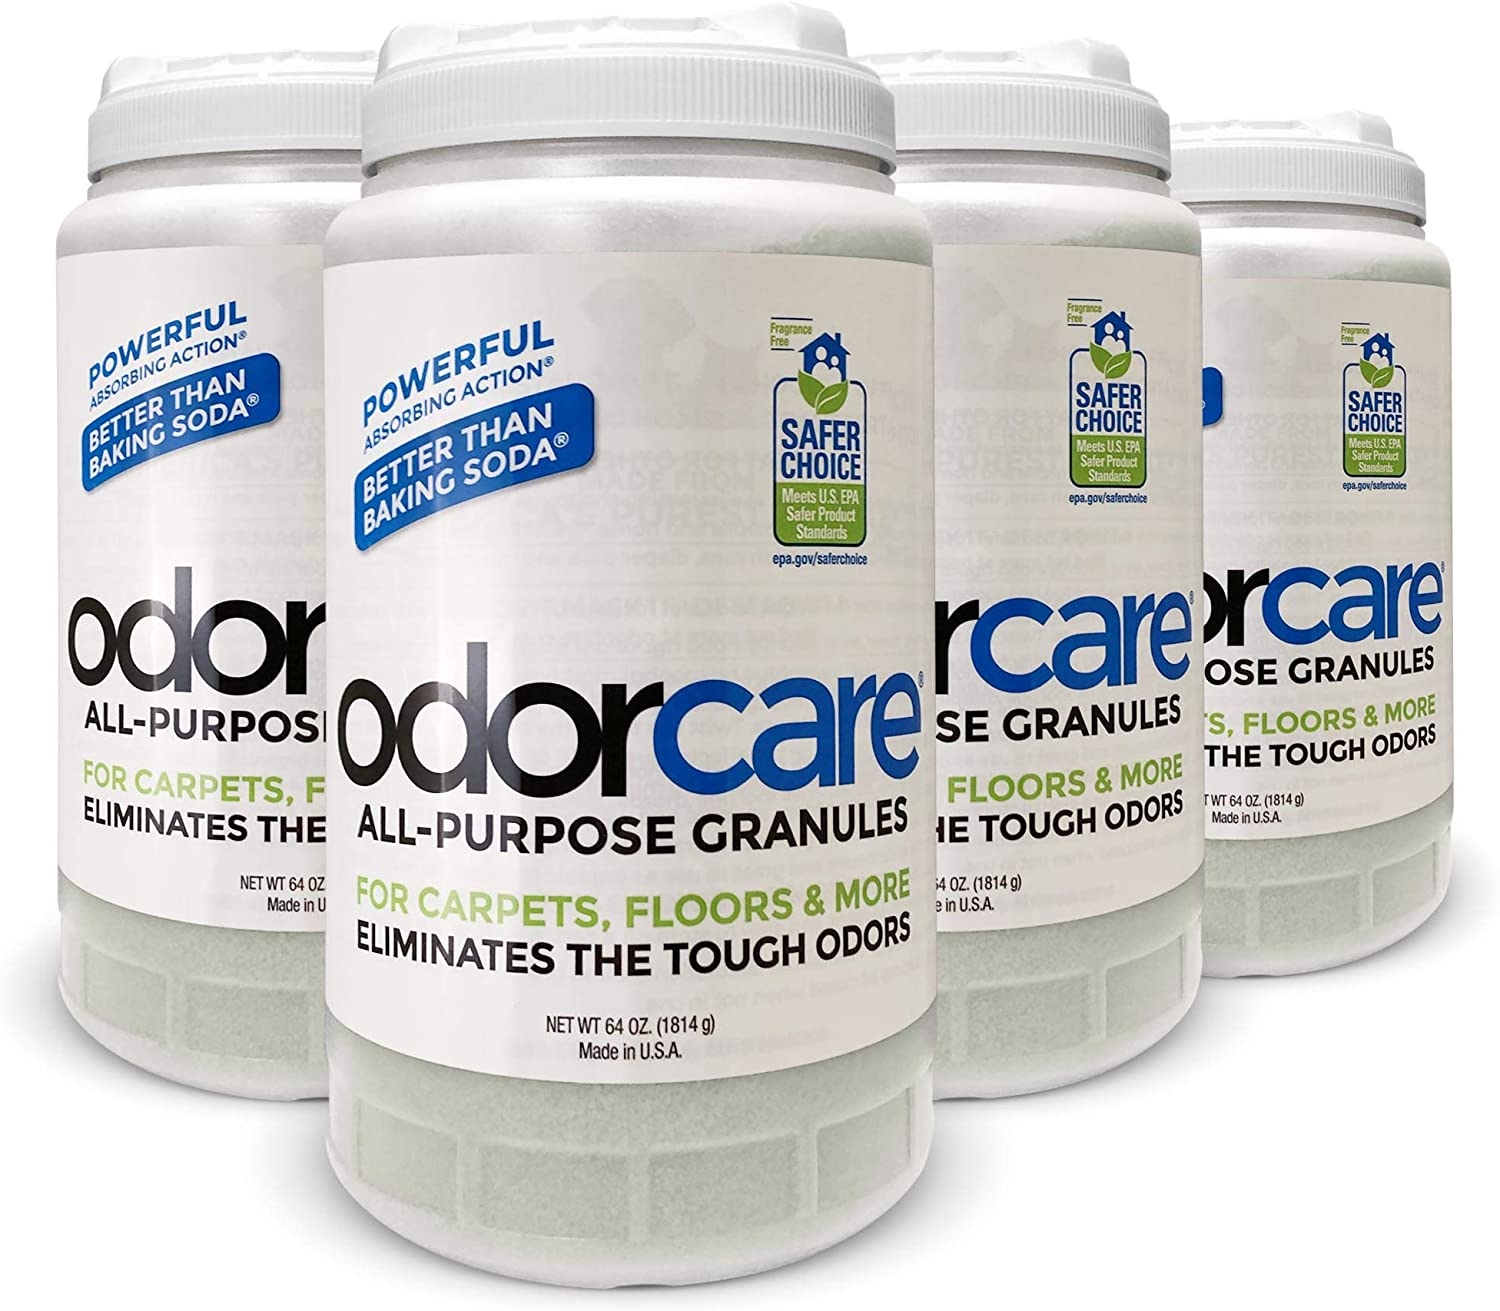 odorcare All-Purpose Granules 64 oz. (Value Pack of 4) for Carpets, Floors, Upholstery & More - The only EPA Safer Choice-Certified granular Home + Business + Pet Odor Eliminator